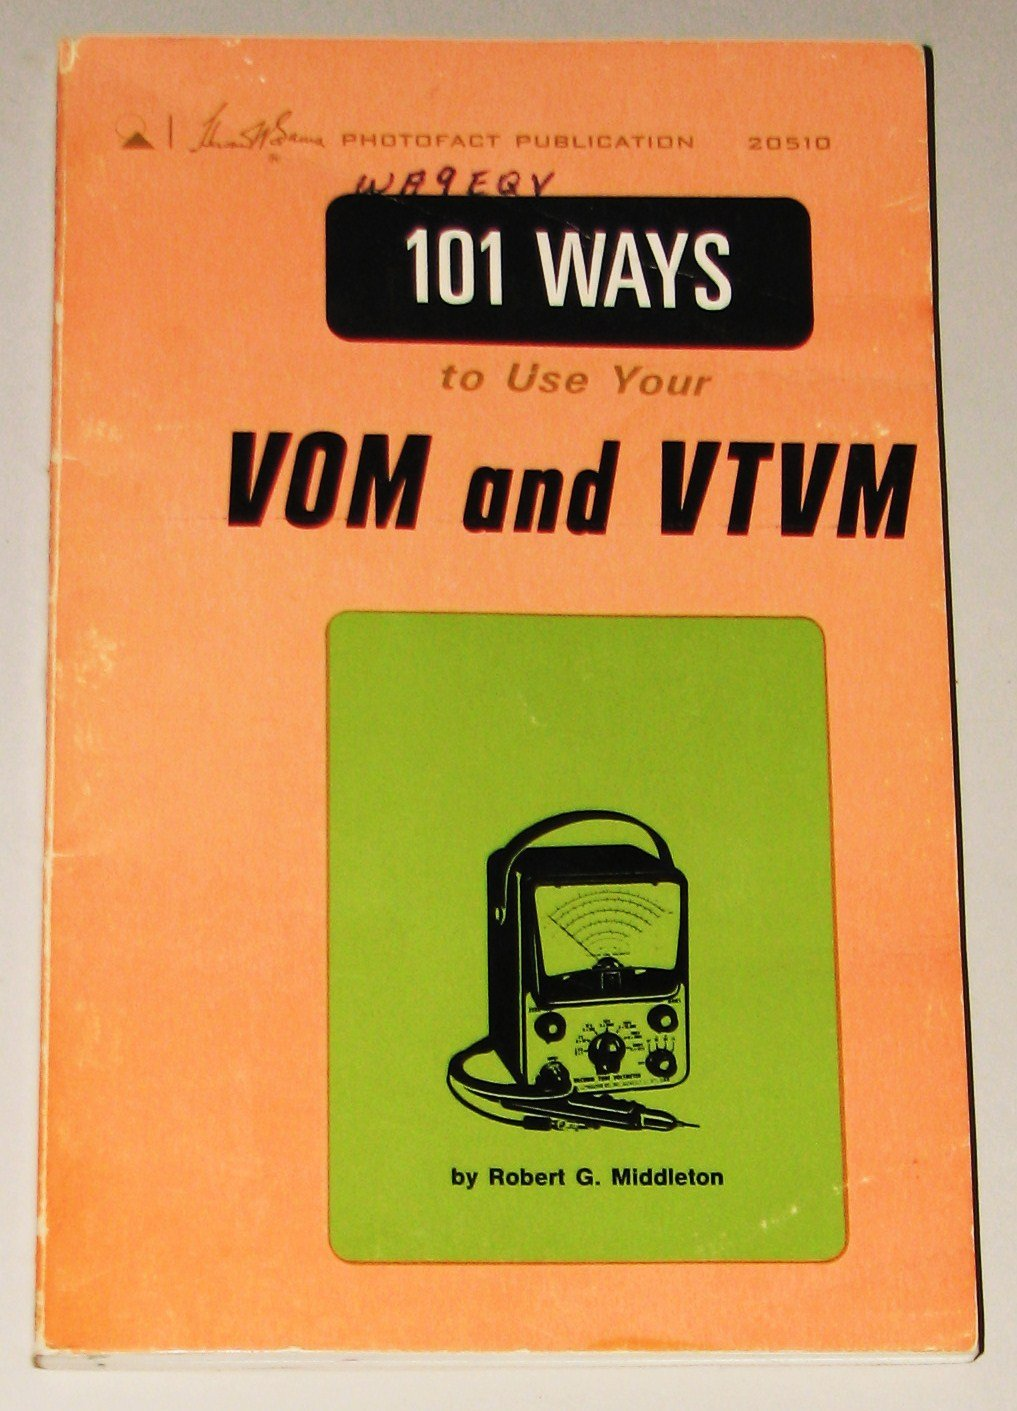 101 Ways to Use Your VOM and Vtvm: Robert G. Middleton: Amazon.com: Books